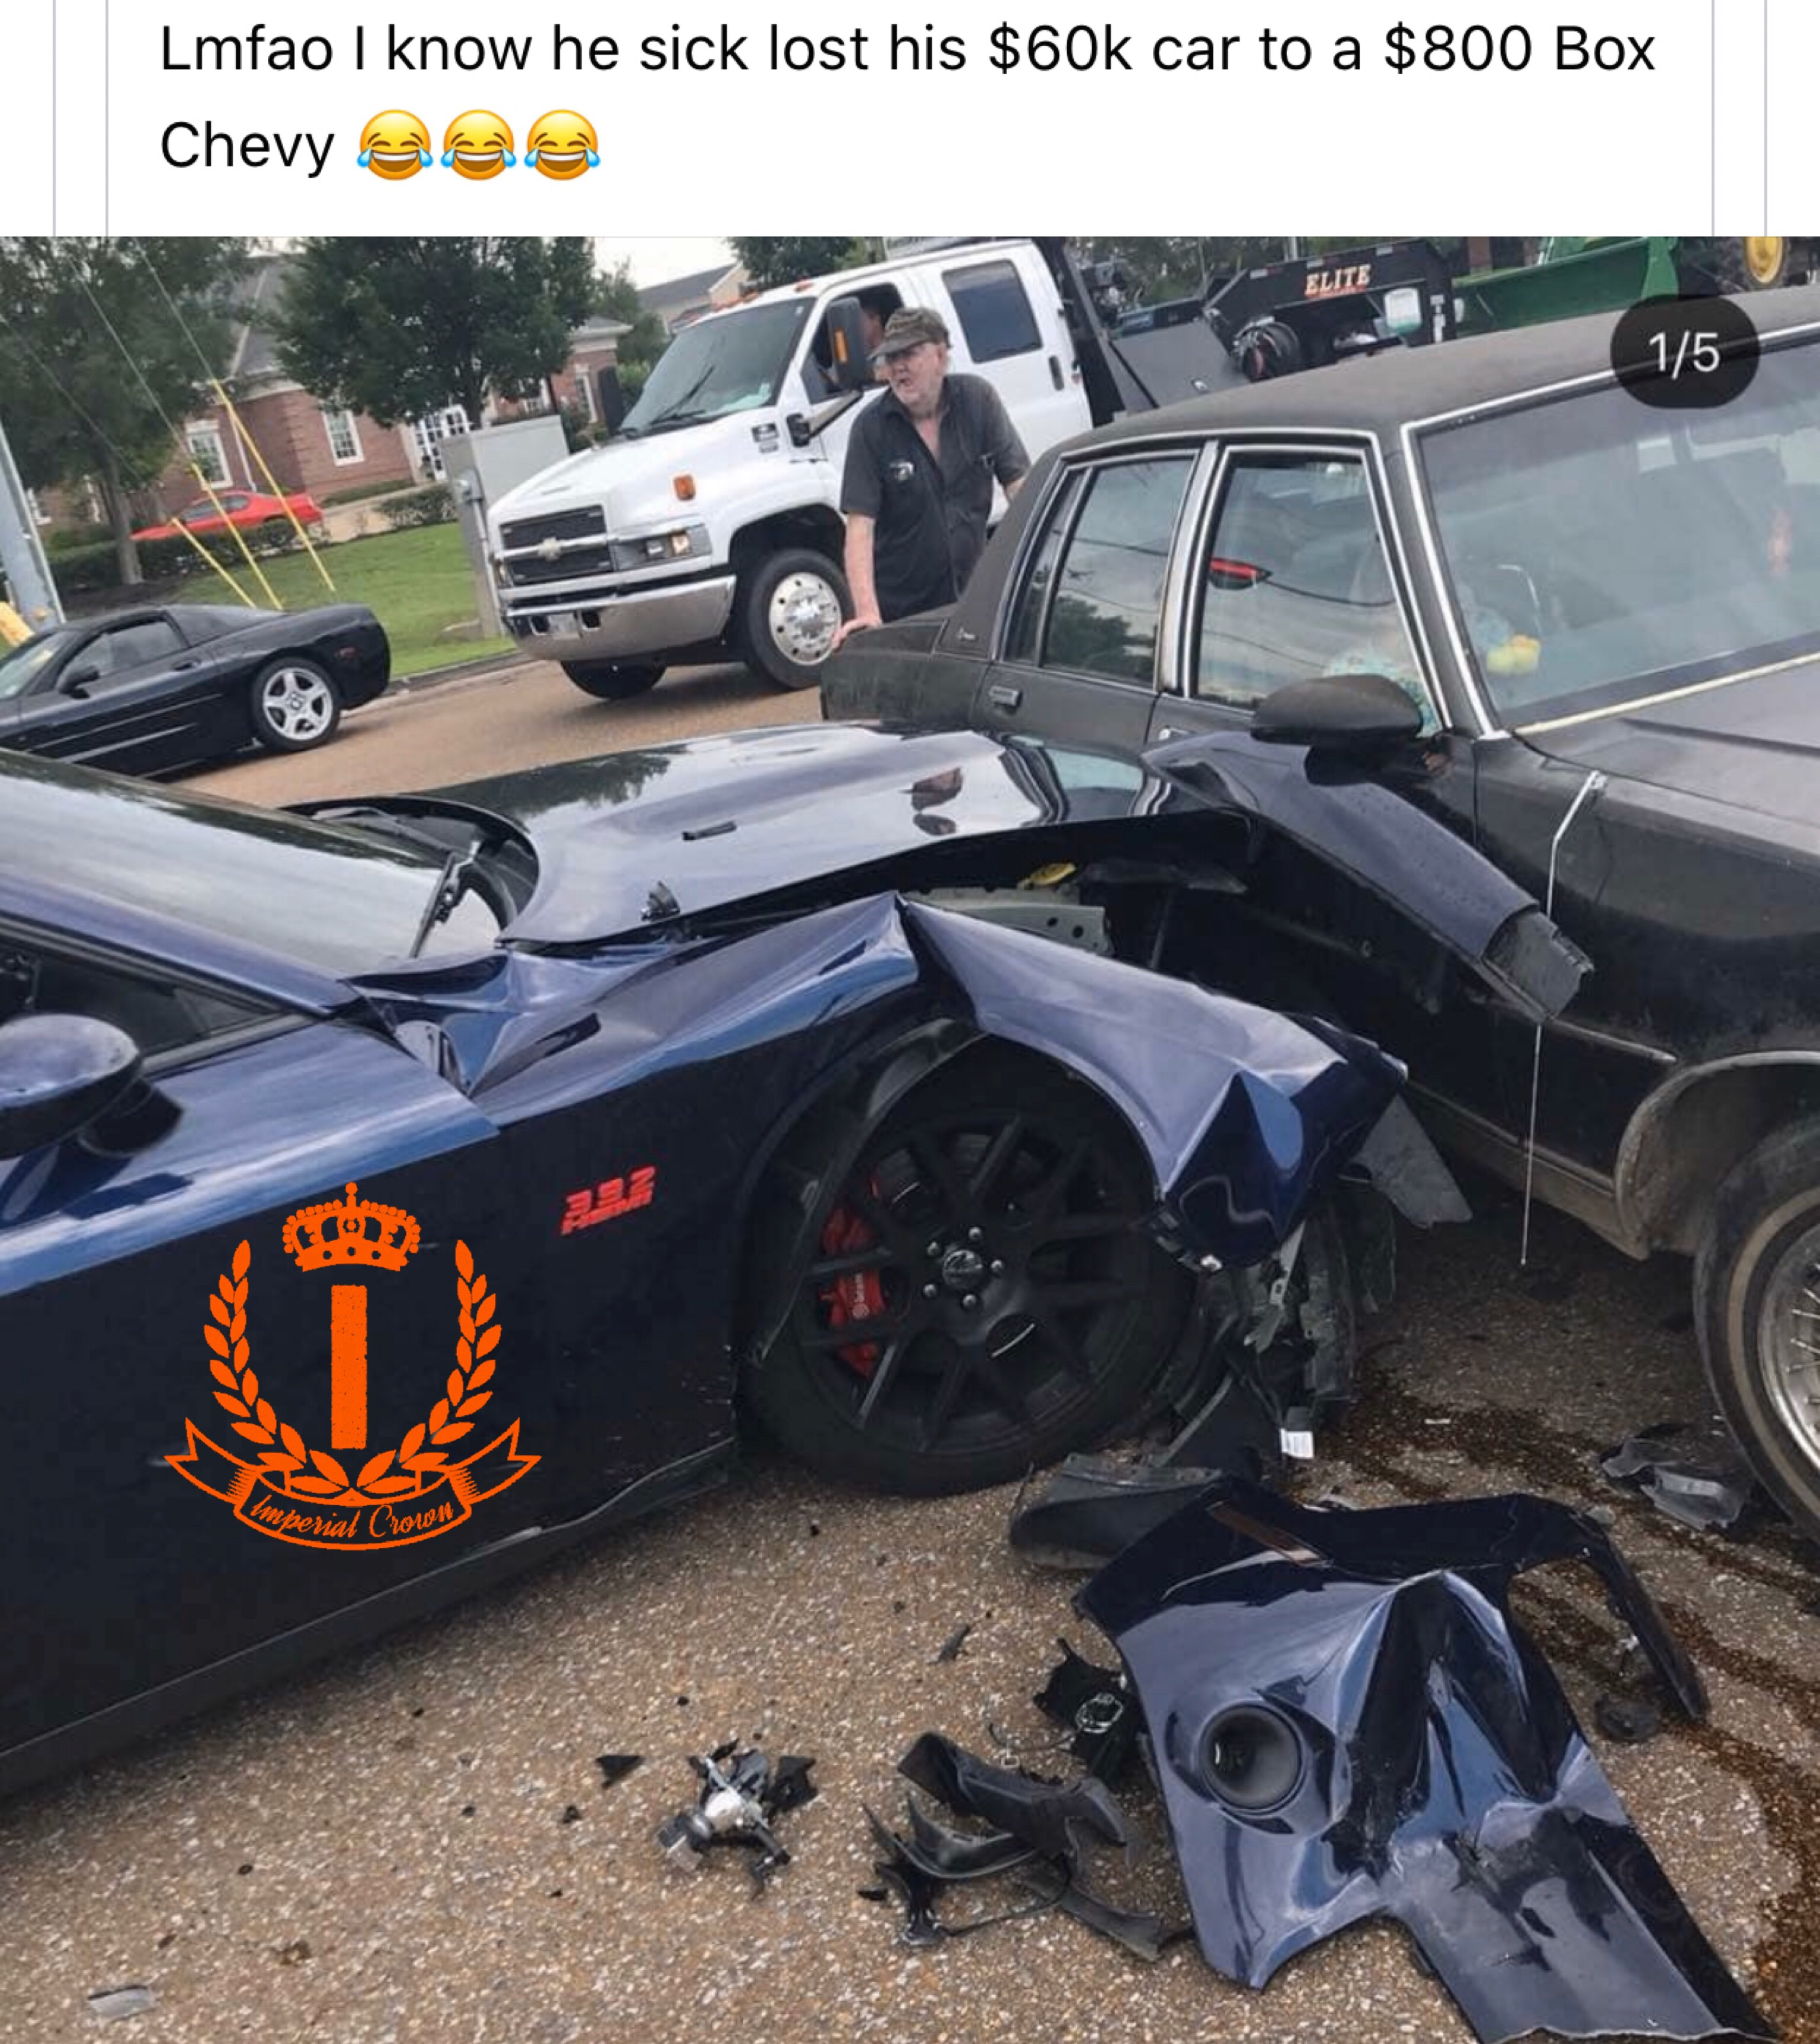 Lmao I know he sick lost his $60k to a $800 box Chevy